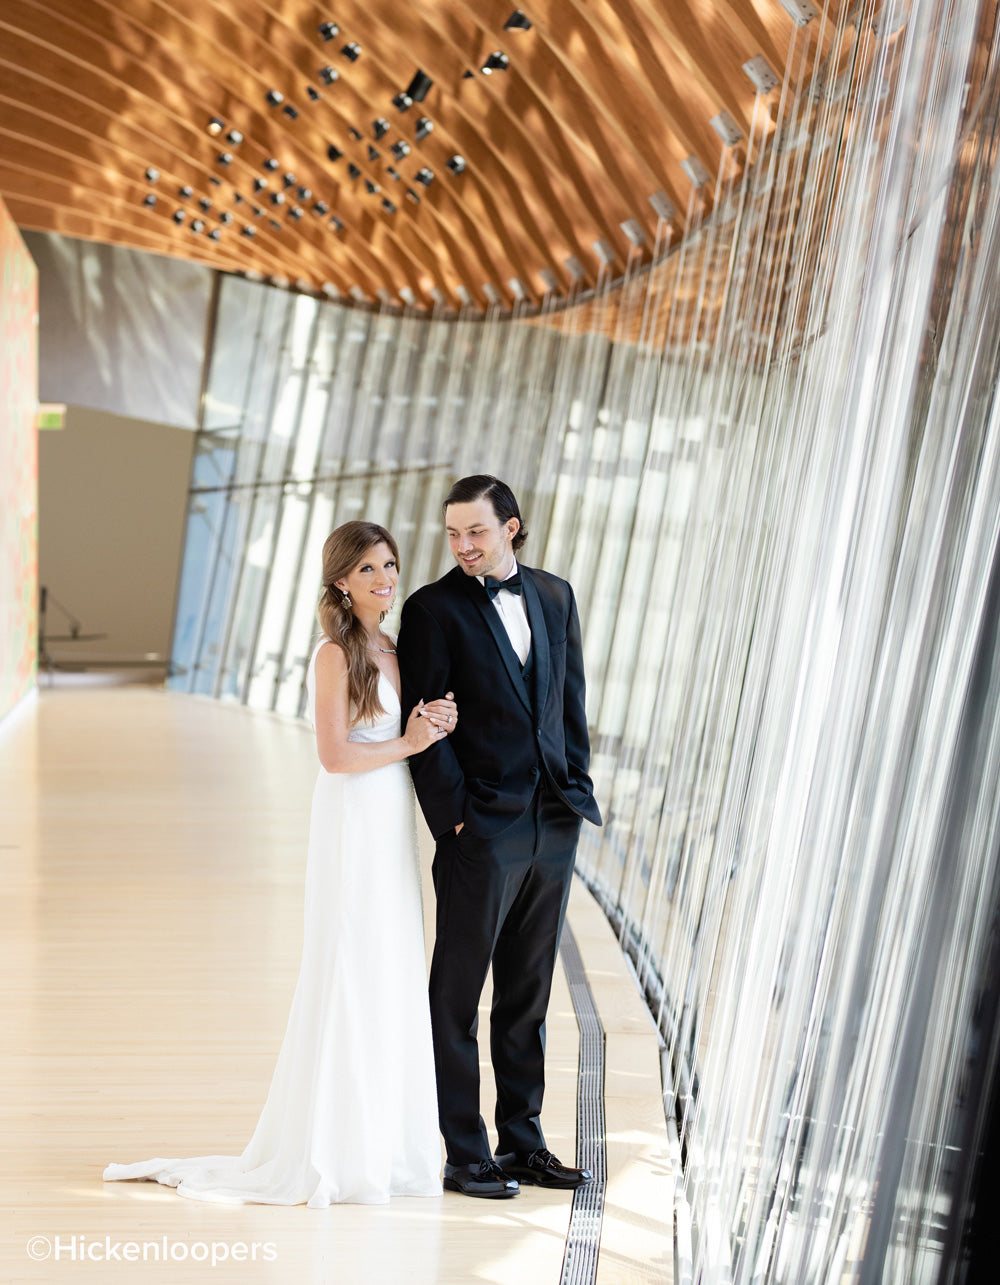 bride and groom in building surrounded by glass paneling by scott hickenlooper